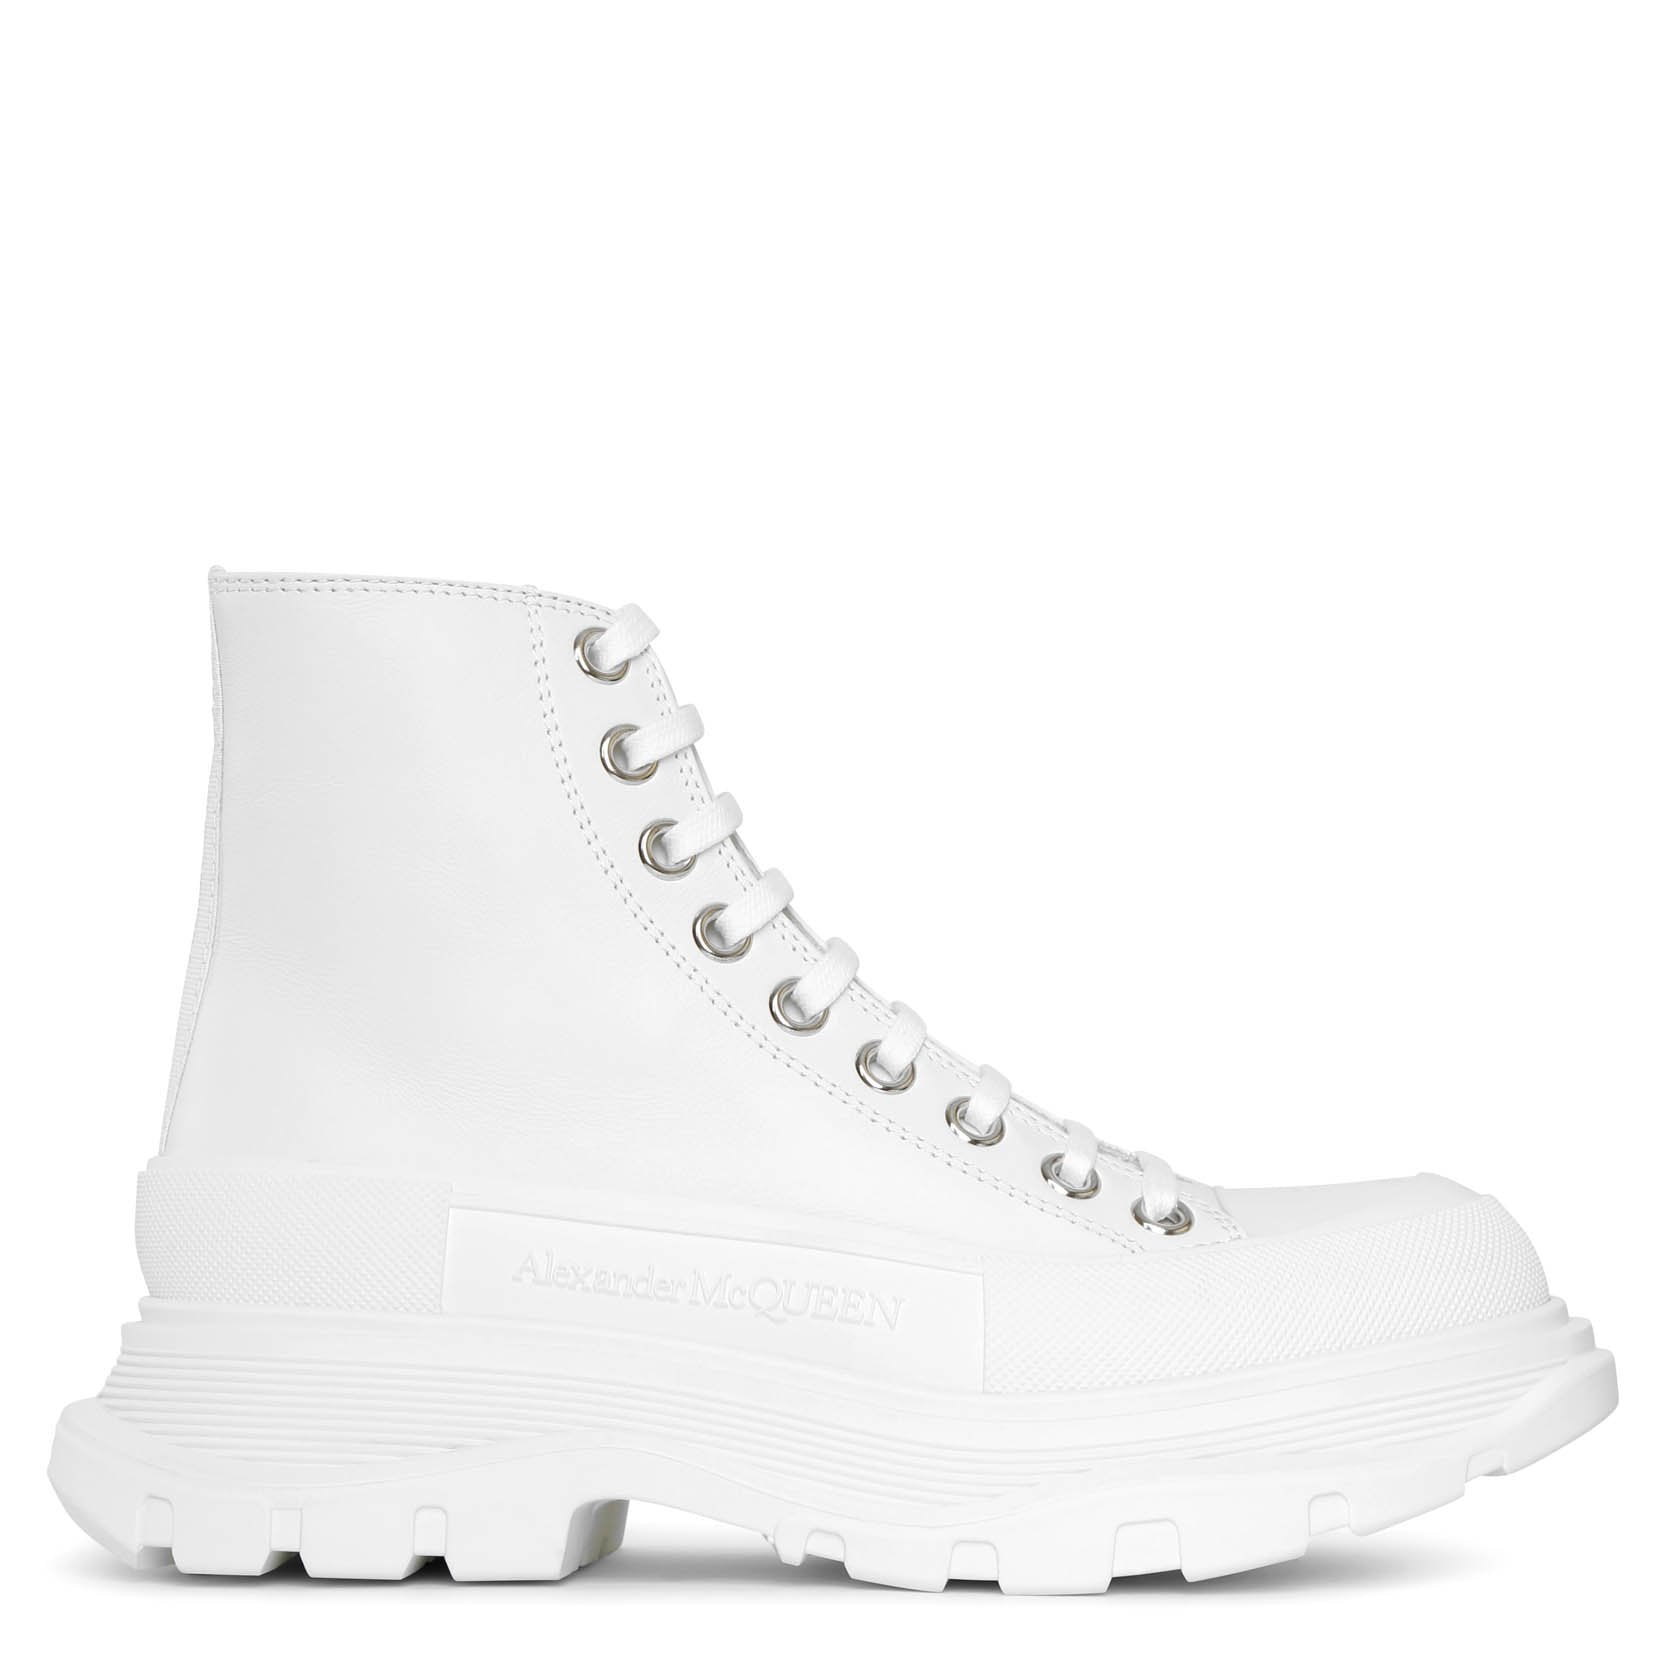 Alexander Mcqueen Tread slick high top white leather boots